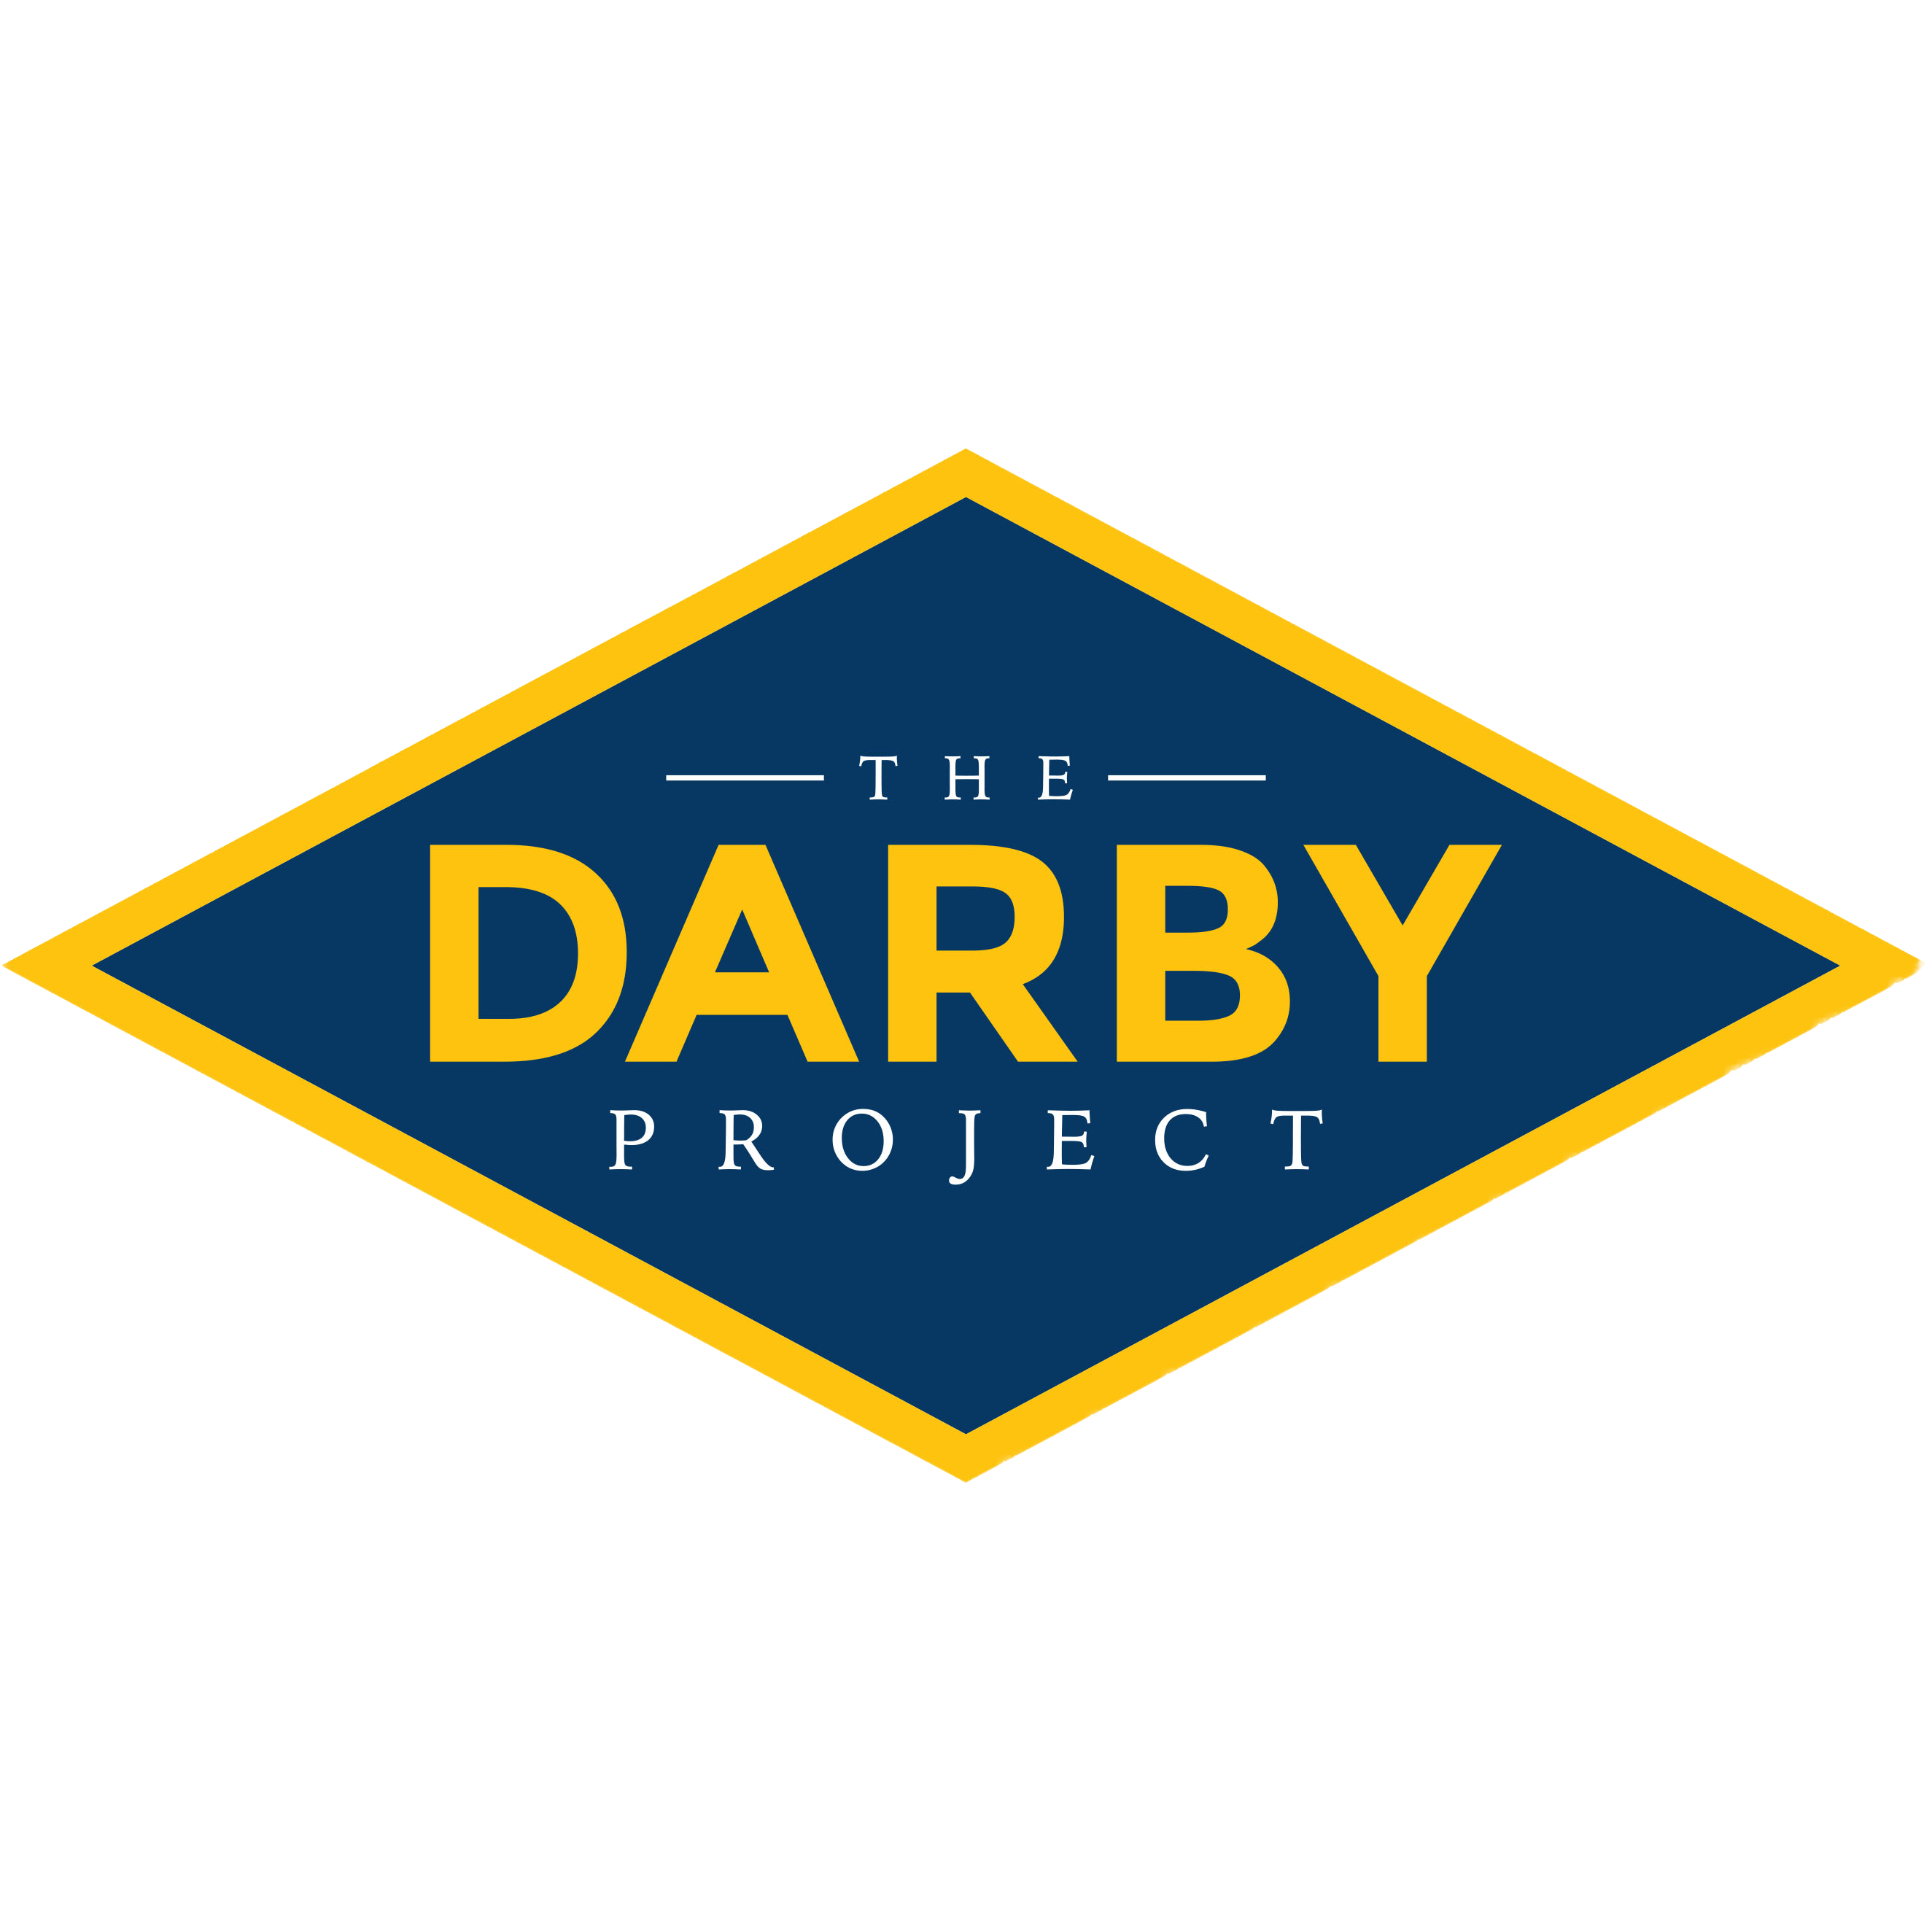 The Darby Project logo